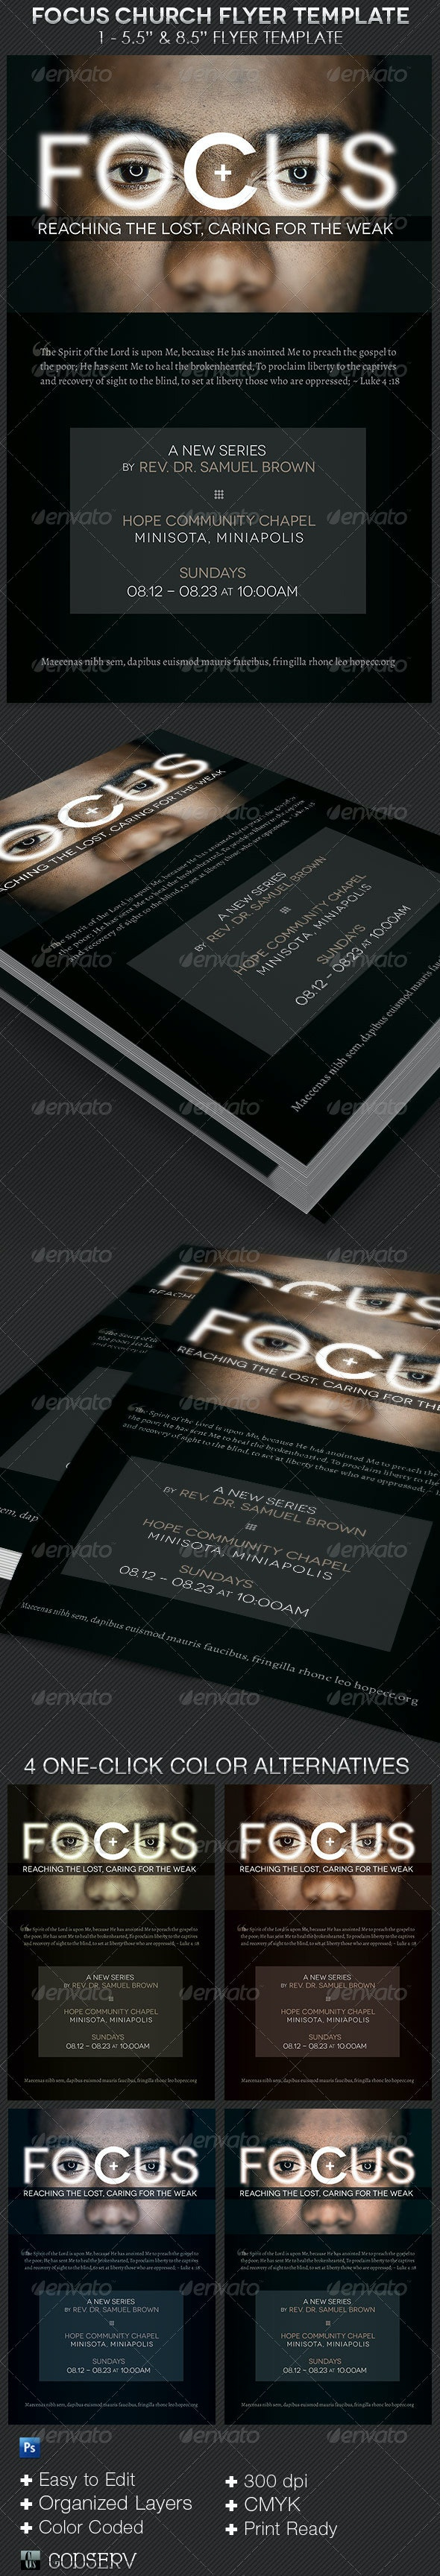 Focus Church Flyer Template  - Church Flyers